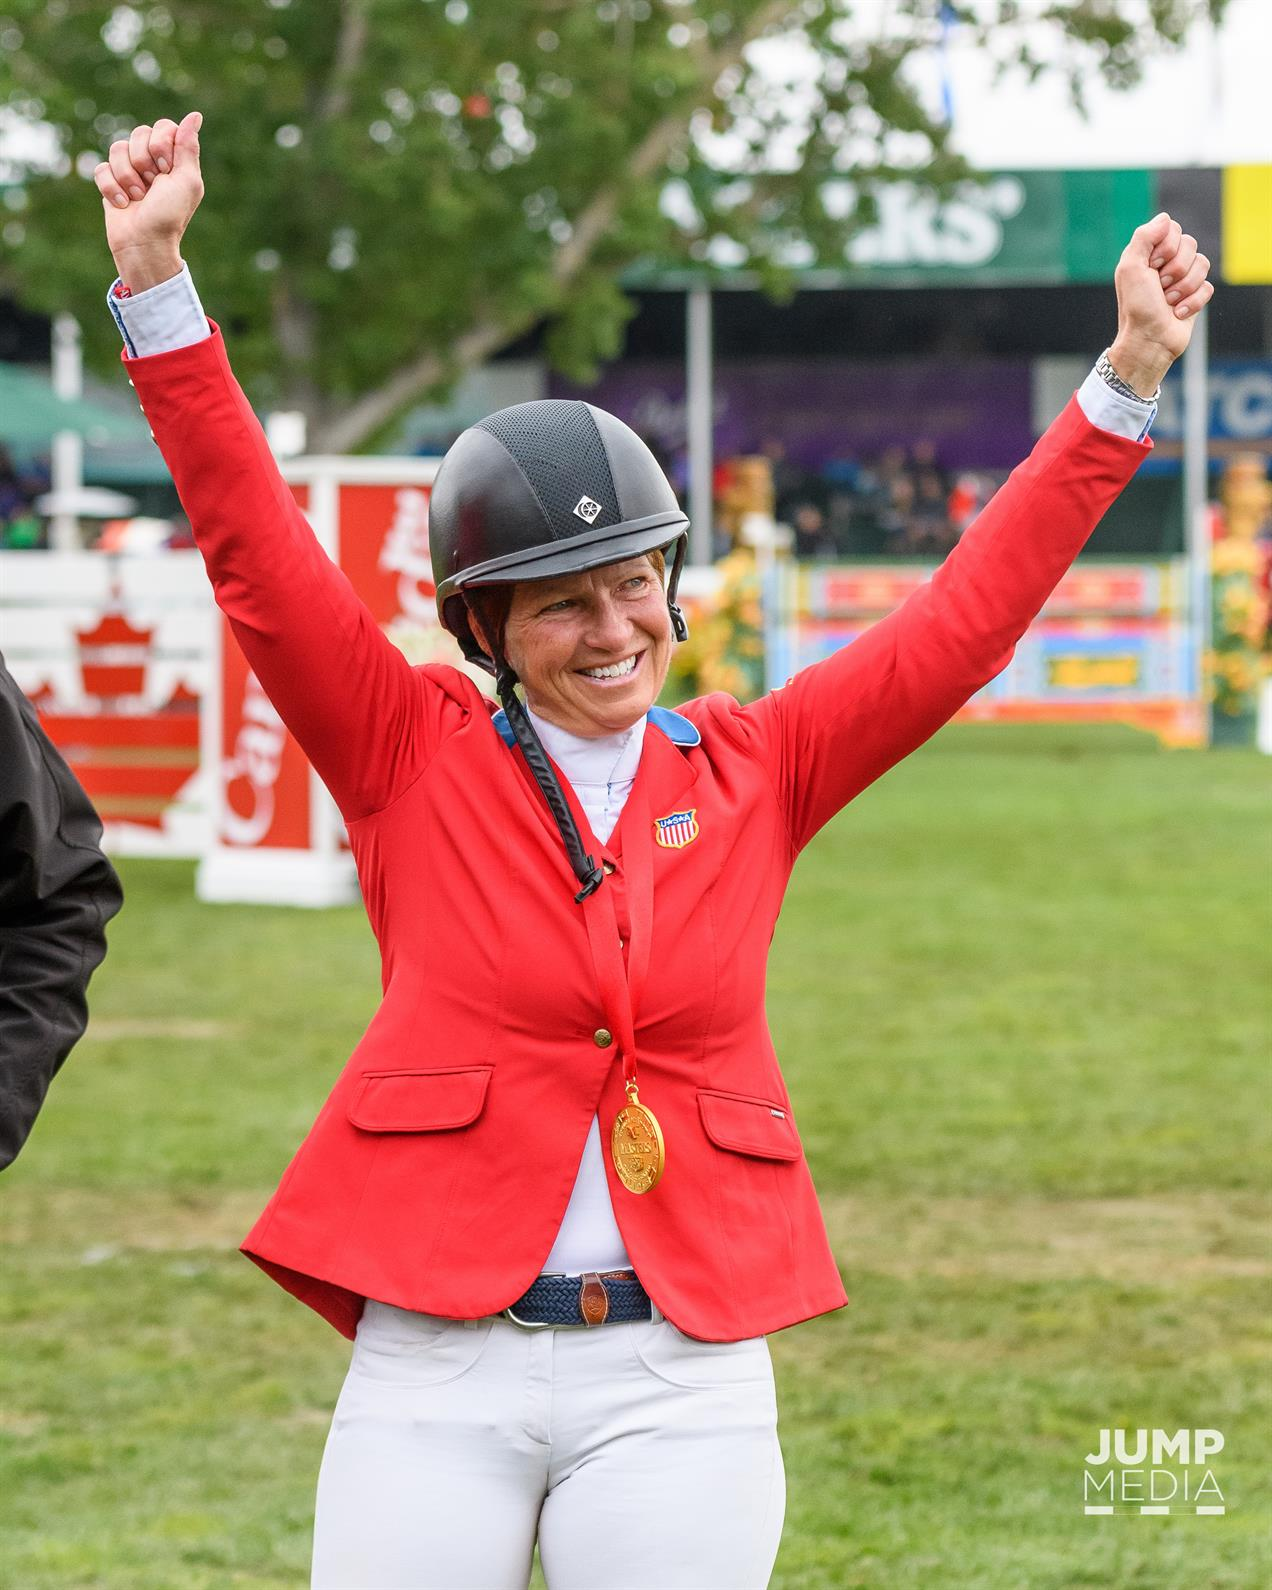 Beezie Madden and Darry Lou Win $3 Million CP 'International' Grand Prix, Presented by Rolex at 2019 Spruce Meadows 'Masters' CSIO5*